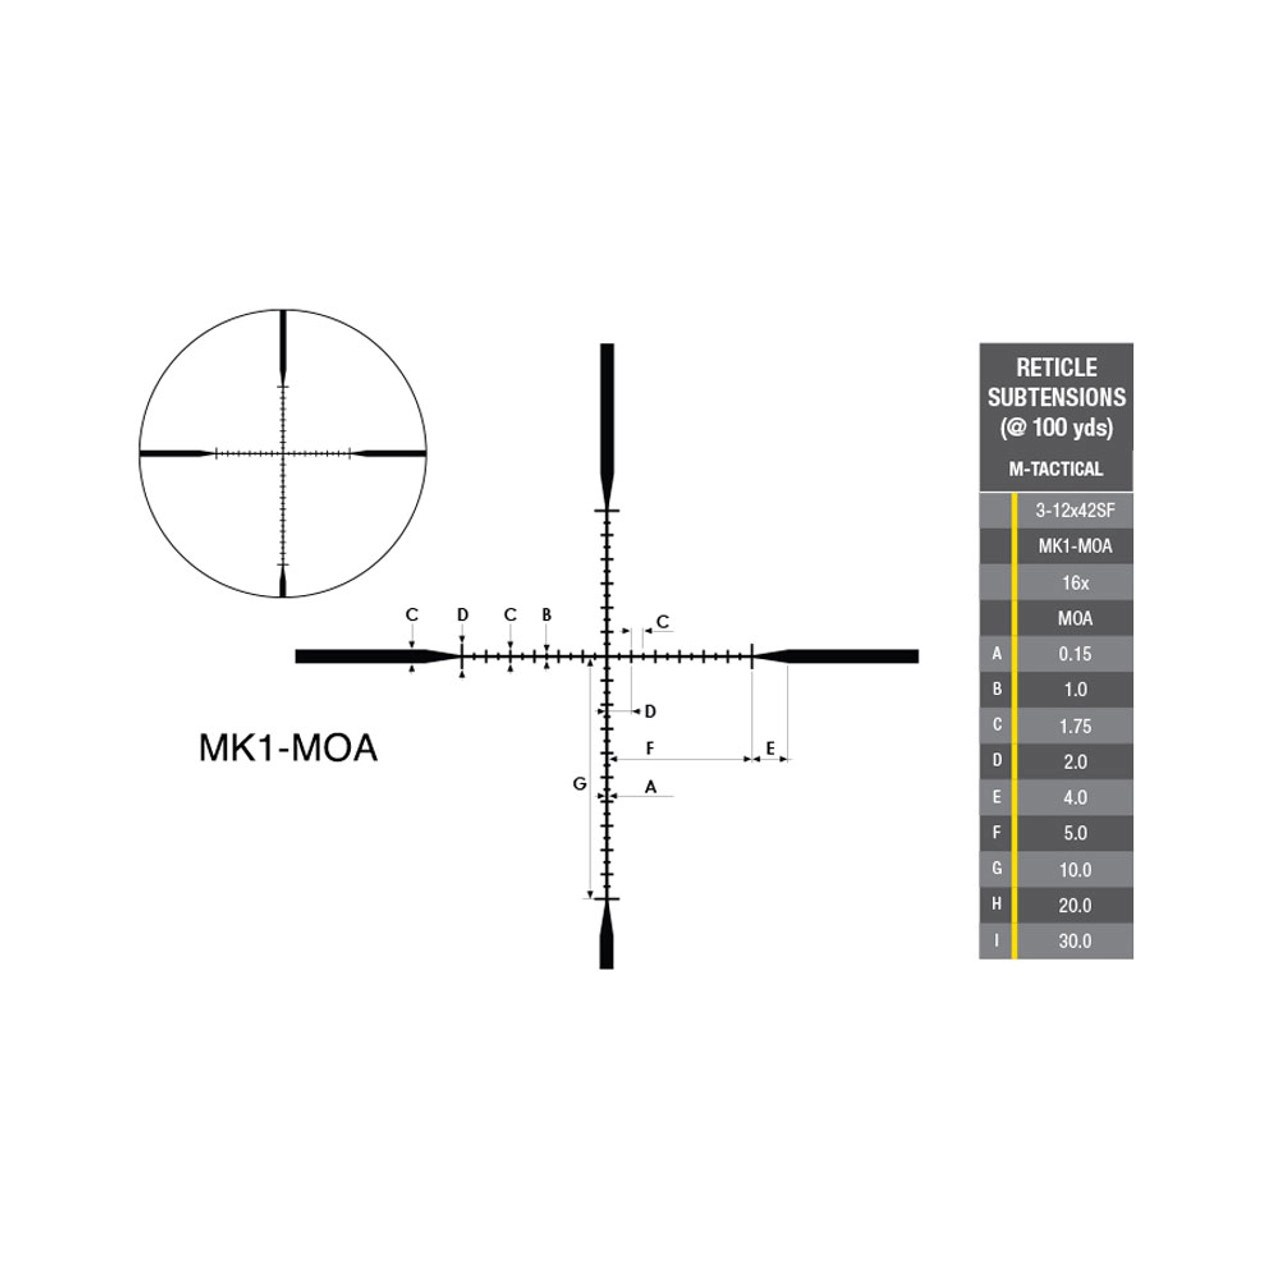 small resolution of ar 15 schematic diagram scientific scope diagram m4 rifle parts diagram bolt